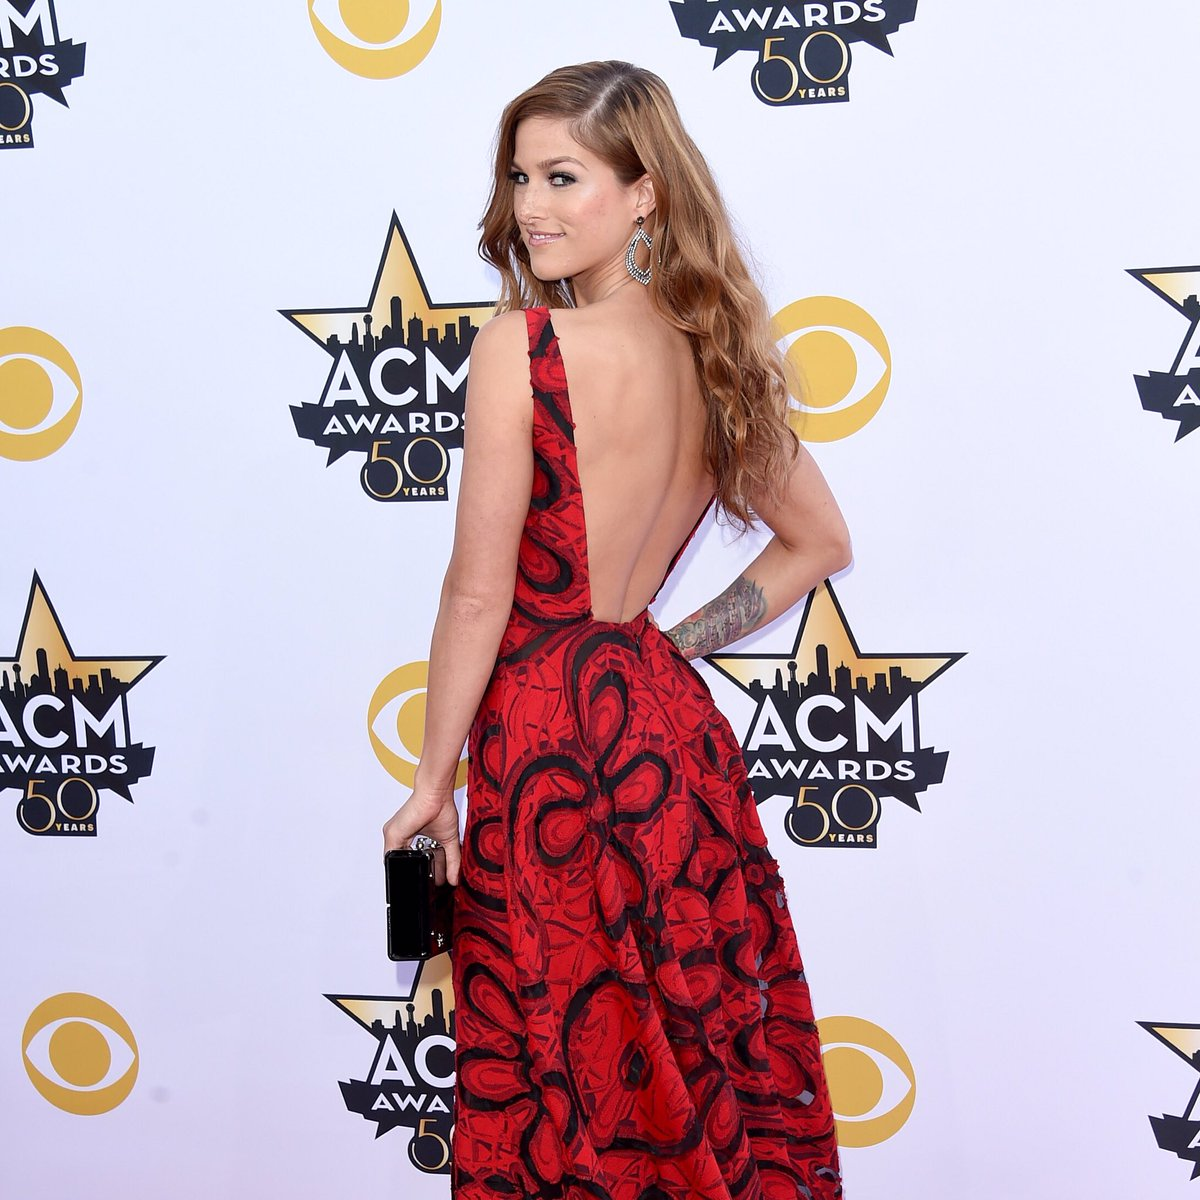 Who is listening to the #cassadeepopeshow on this Monday? @cassadeepope on all week from 10am-2pm! #gocountry105 https://t.co/wxelfk1d2Y